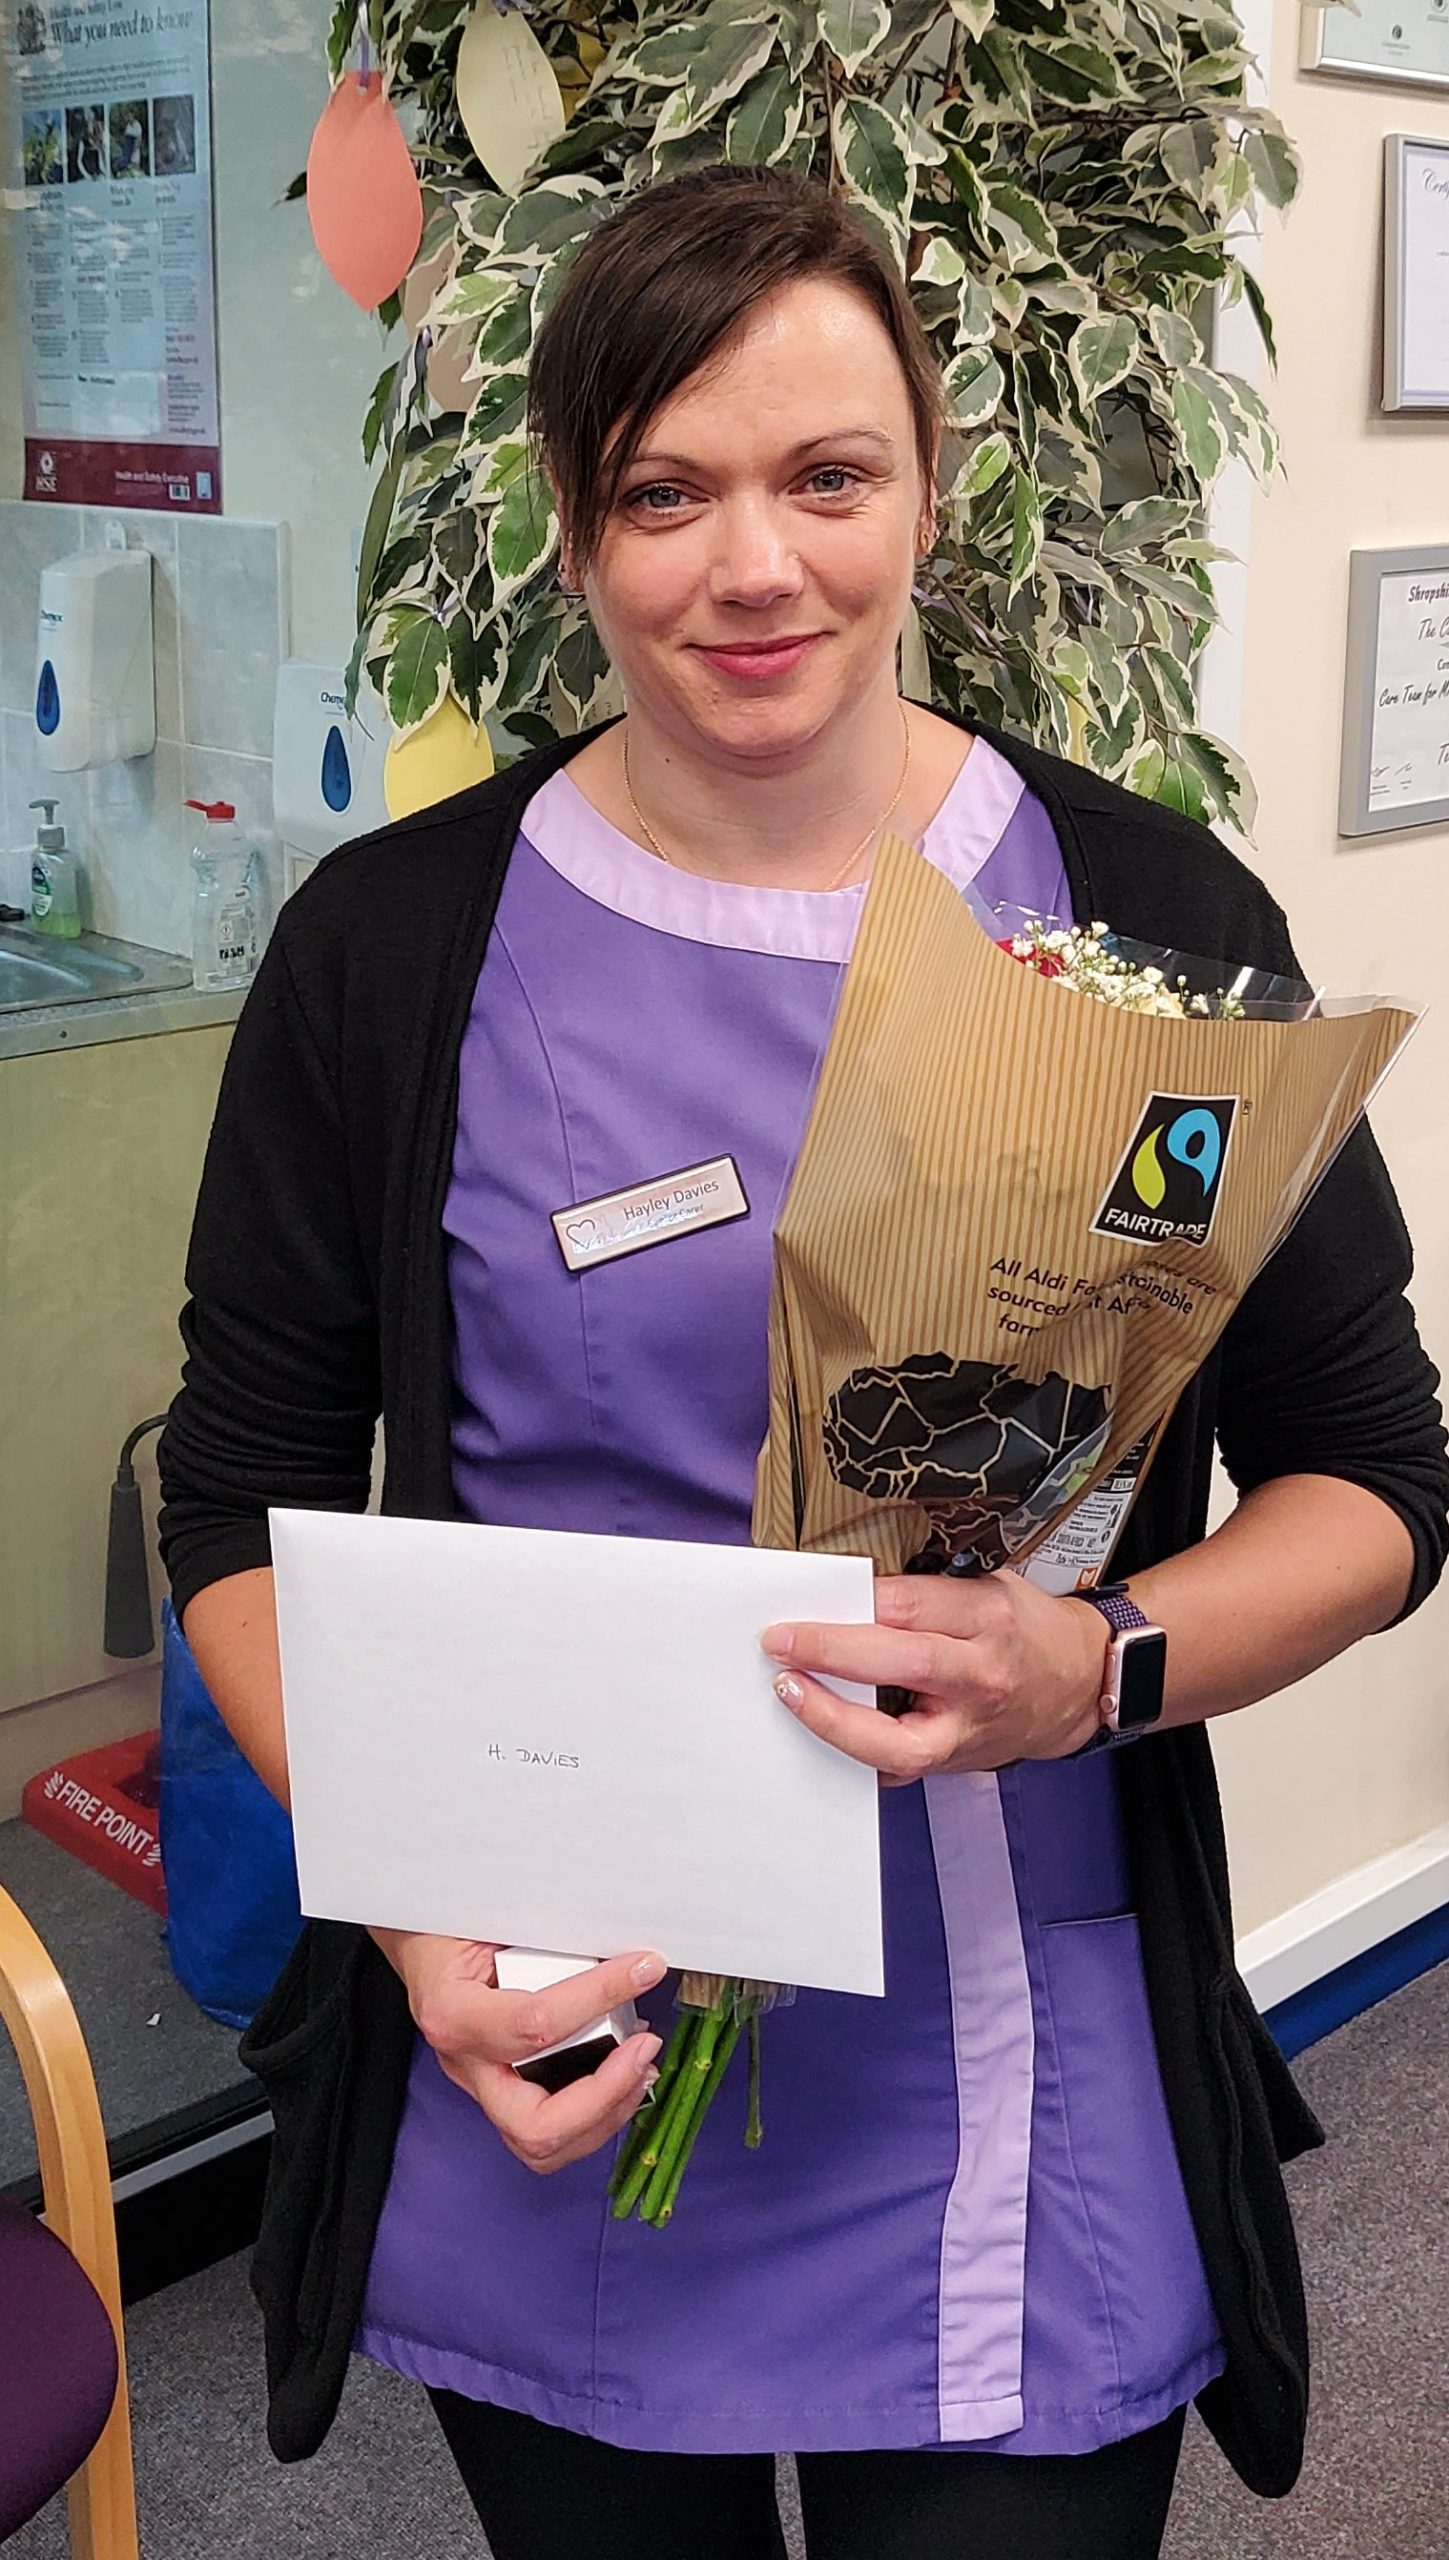 Congratulations to Hayley Davies who has also received her 5-years long service award. (Hayley and Ben joined the Company on the same day). Hayley is our most experienced Senior Carer, having been in this post since she joined the Company. In that time, she has achieved her Level 3 Qualification in Care, juggling family and work commitments as she studied. Hayley brings and air of efficiency and calm and is a really good contributor to the Senior Care Team. Thank you Hayley for everything you have done for the Company, your colleagues and especially your clients.